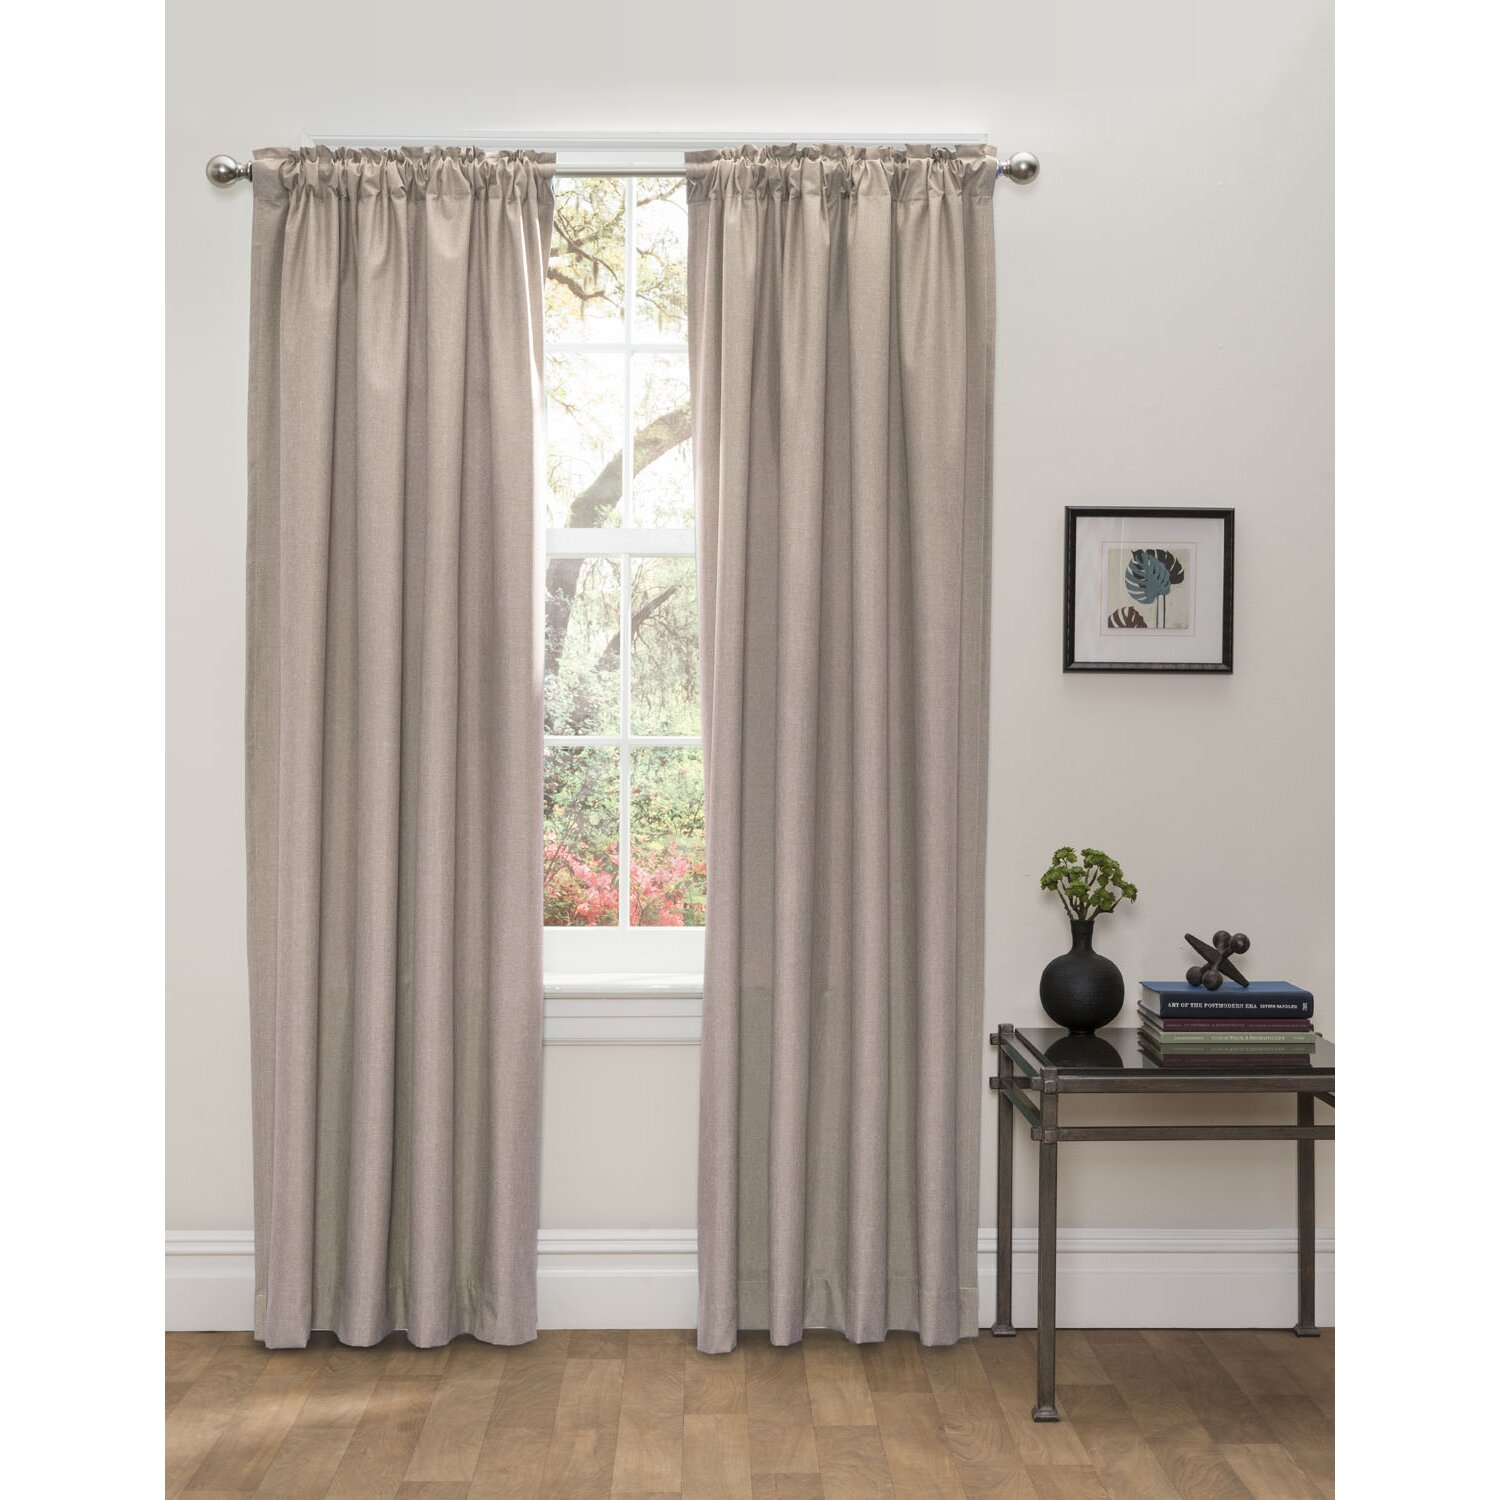 Hlc Me Olivia Solid Blackout Thermal Rod Pocket Curtain Panels Reviews Wayfair